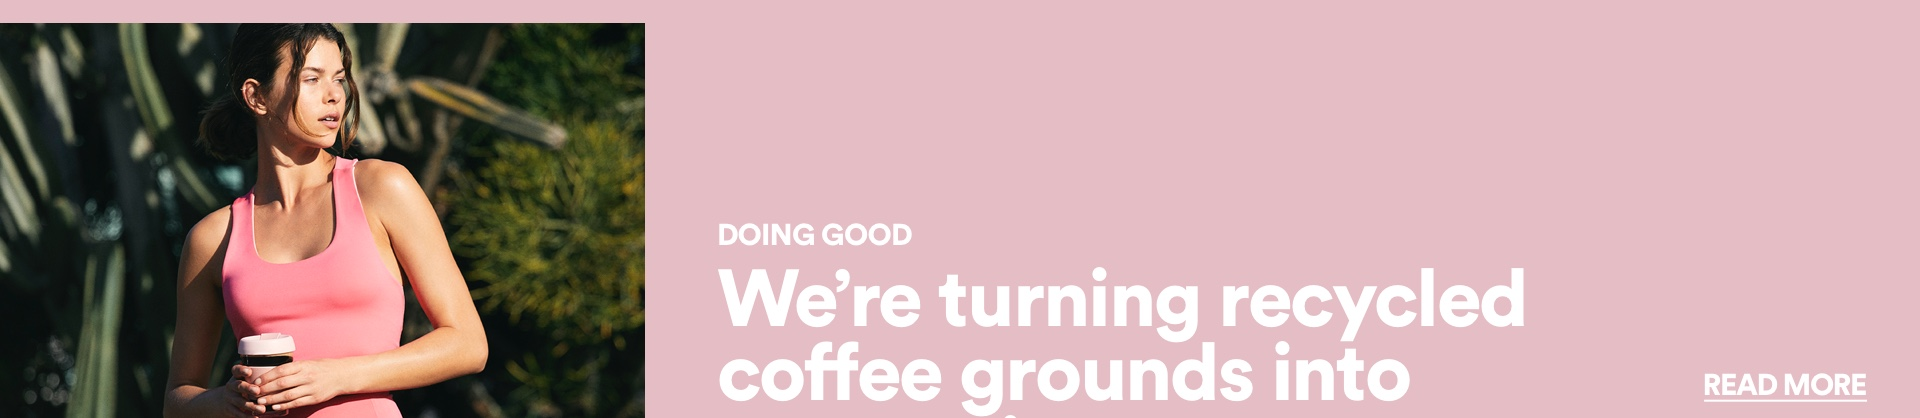 We're Turning Recycled Coffee Grounds Into New Active. Read More